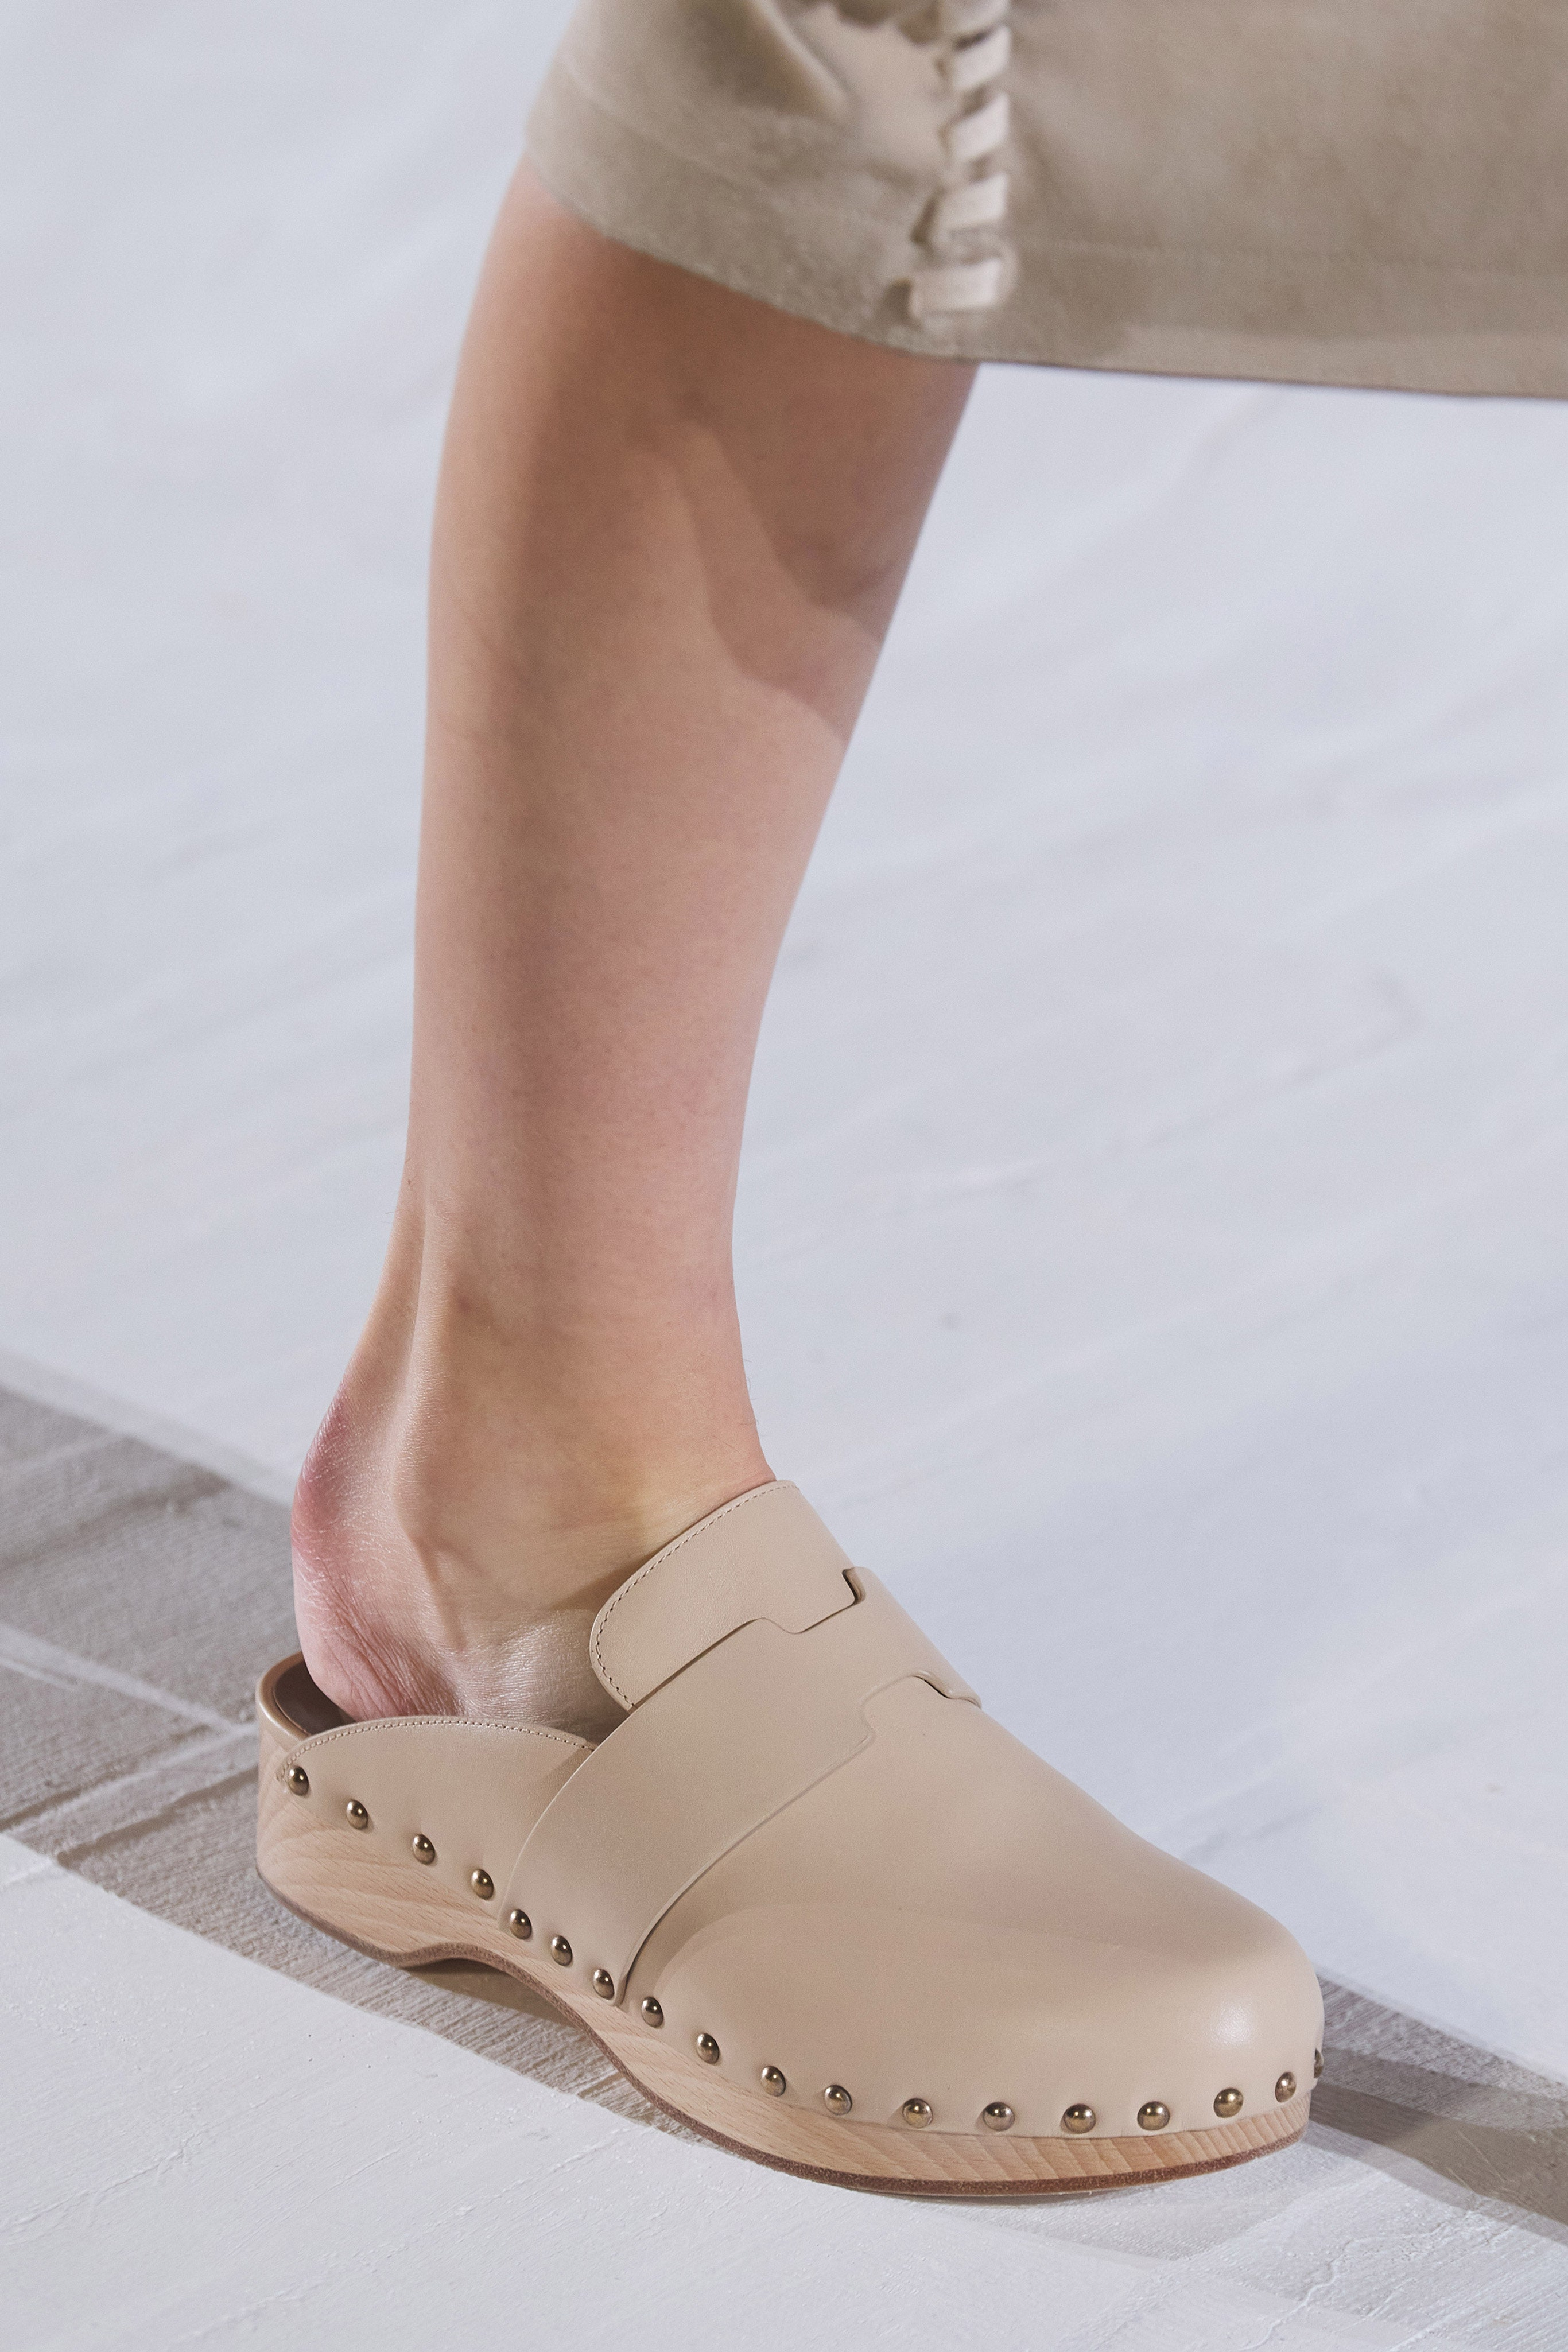 A Visual History of Clogs - Shoe Trend Spring/Summer 2021